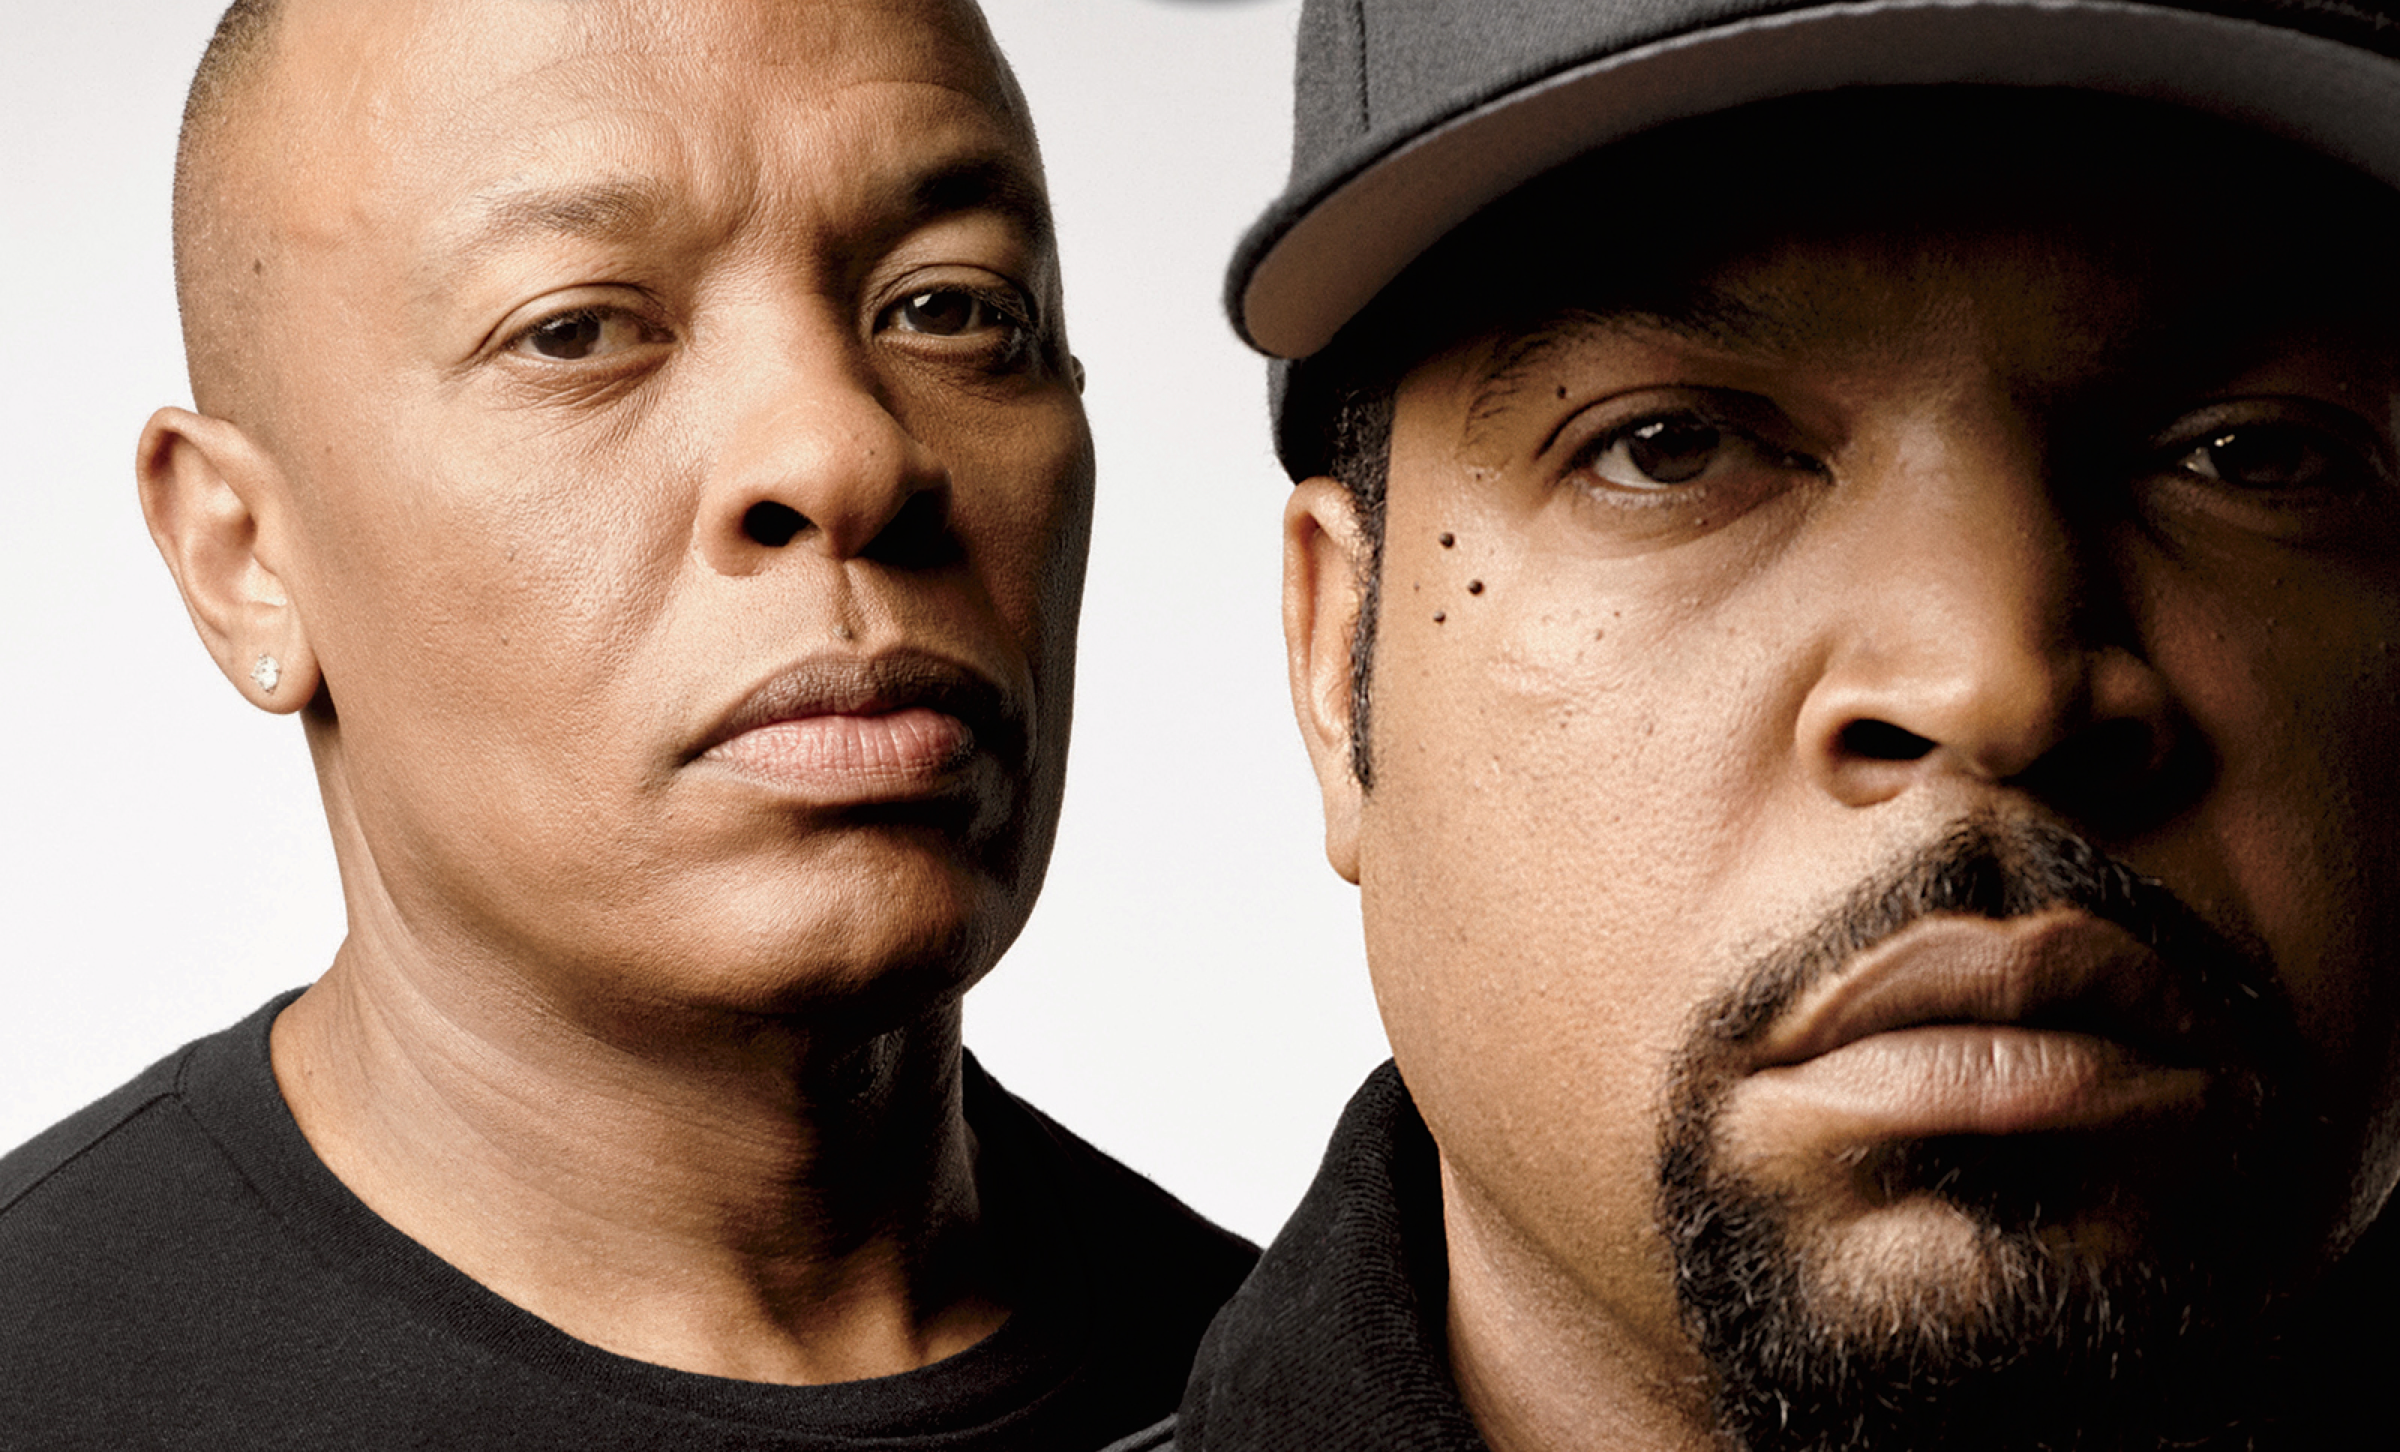 Ice Cube Cover Photo Cheap n.w.a billboard cover story x kendrick lamar interview | ice cube